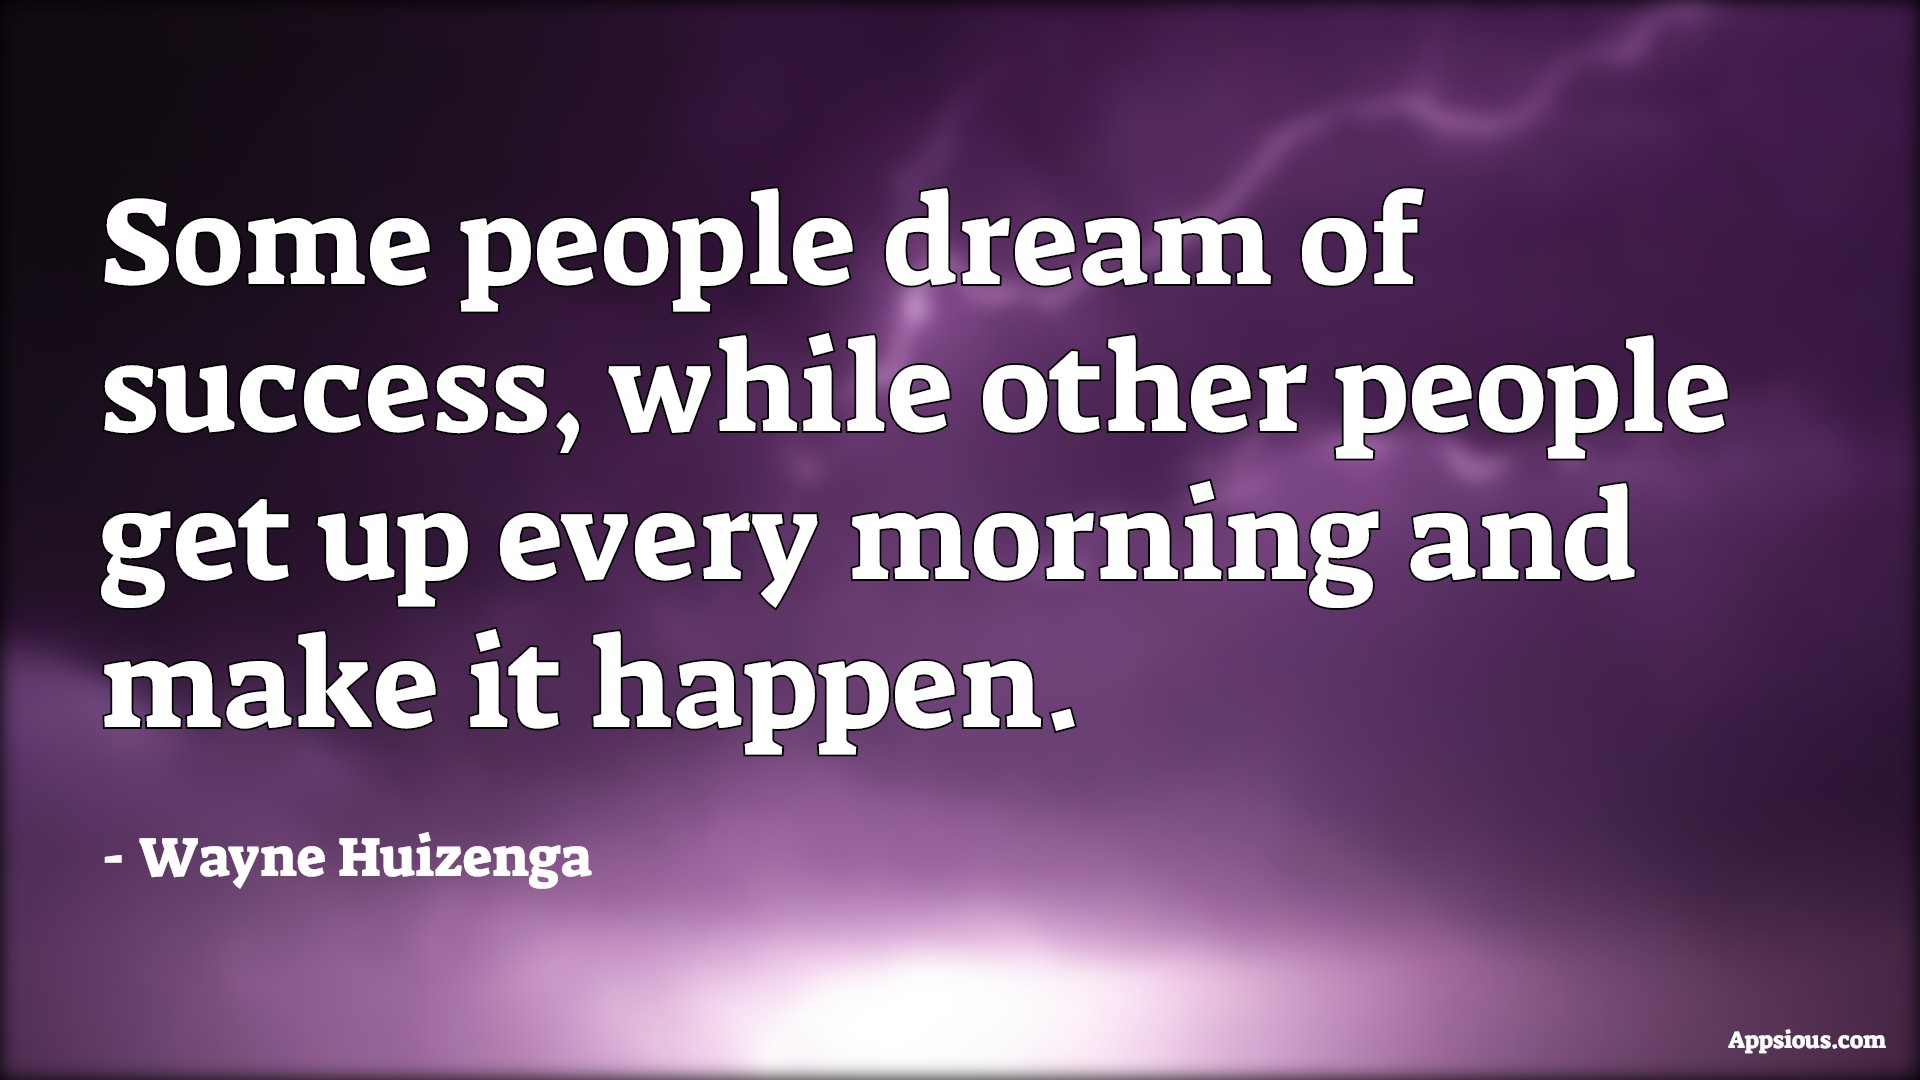 Some people dream of success, while other people get up every morning and make it happen.